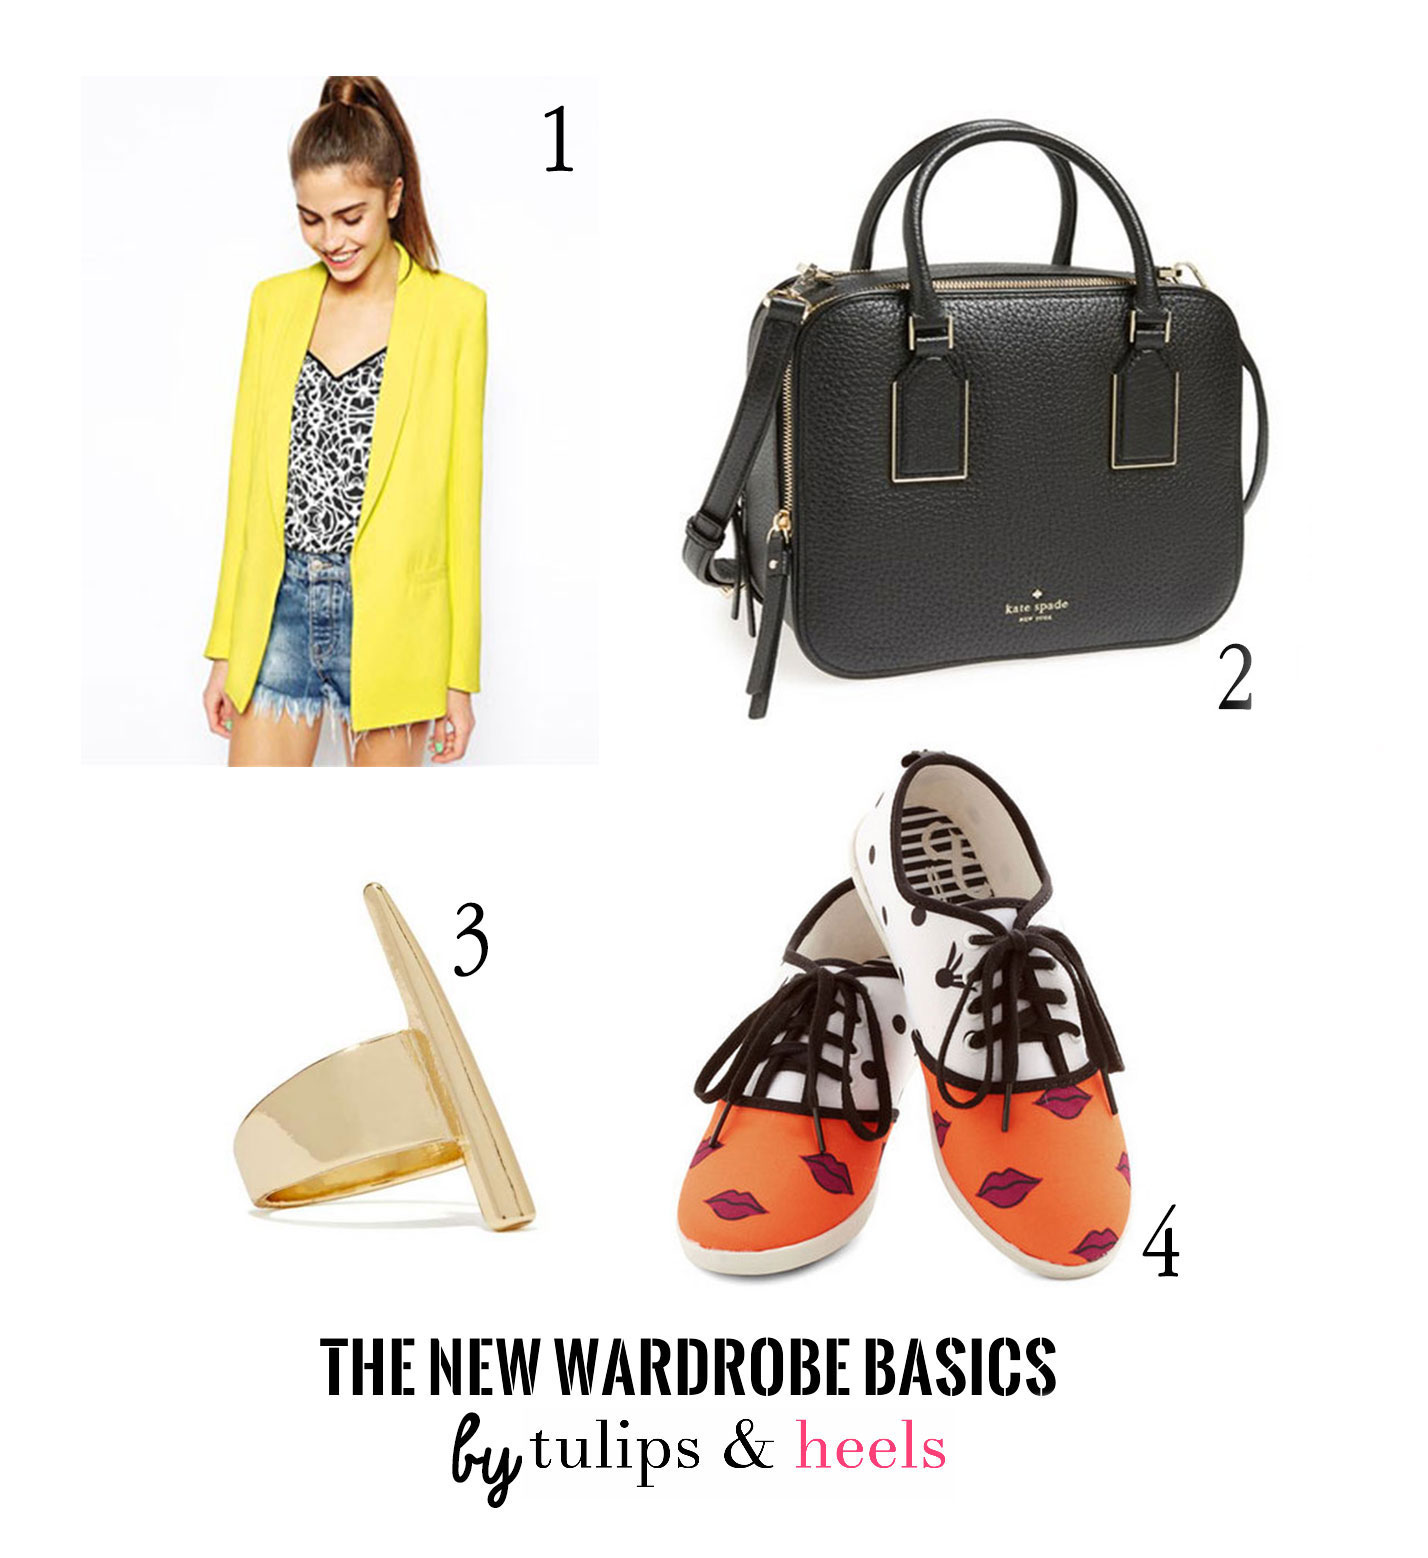 The new wardrobe basics